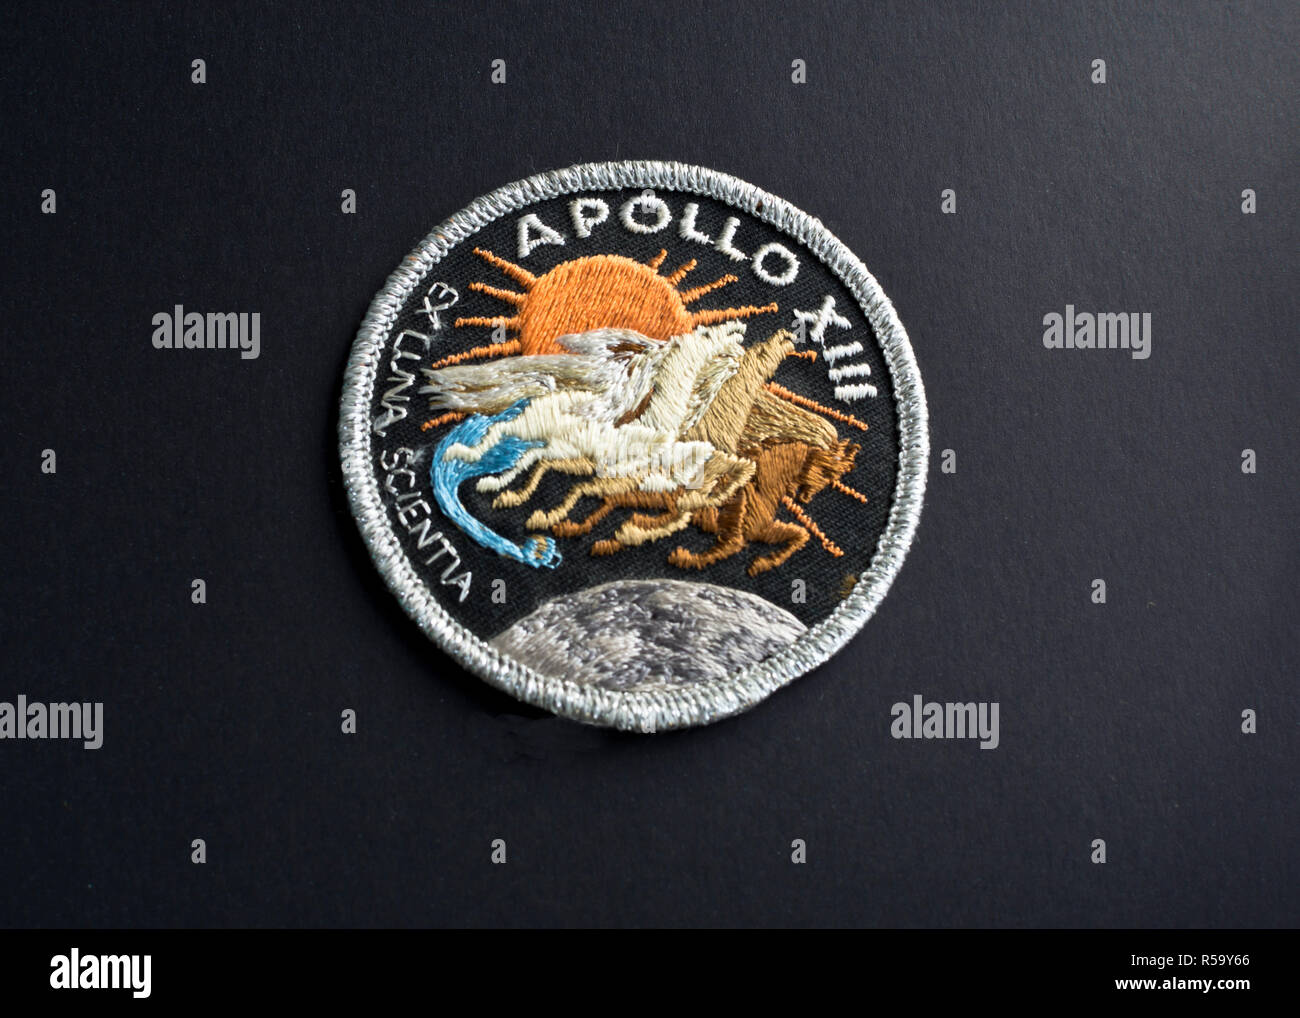 Mission patch from the NASA Apollo 13 space flight.  Mission badge for Apollo XIII spaceflight. - Stock Image